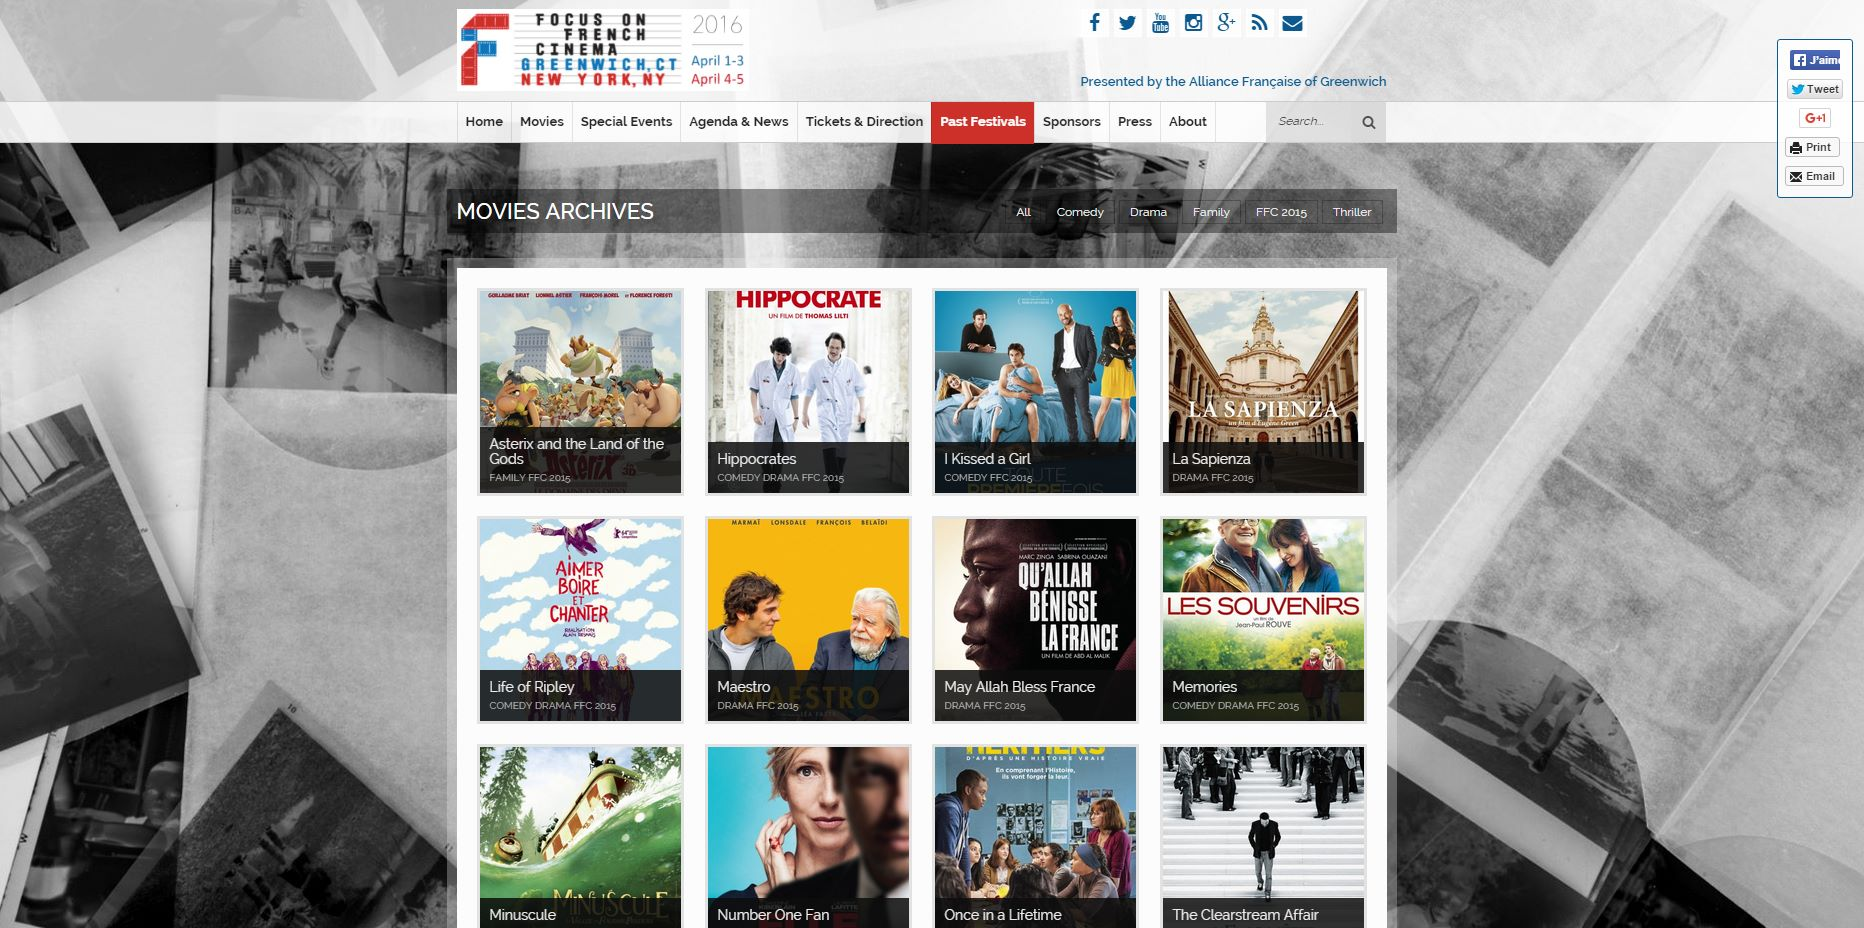 conception-web-montreal-focus-on-french-cinema-16